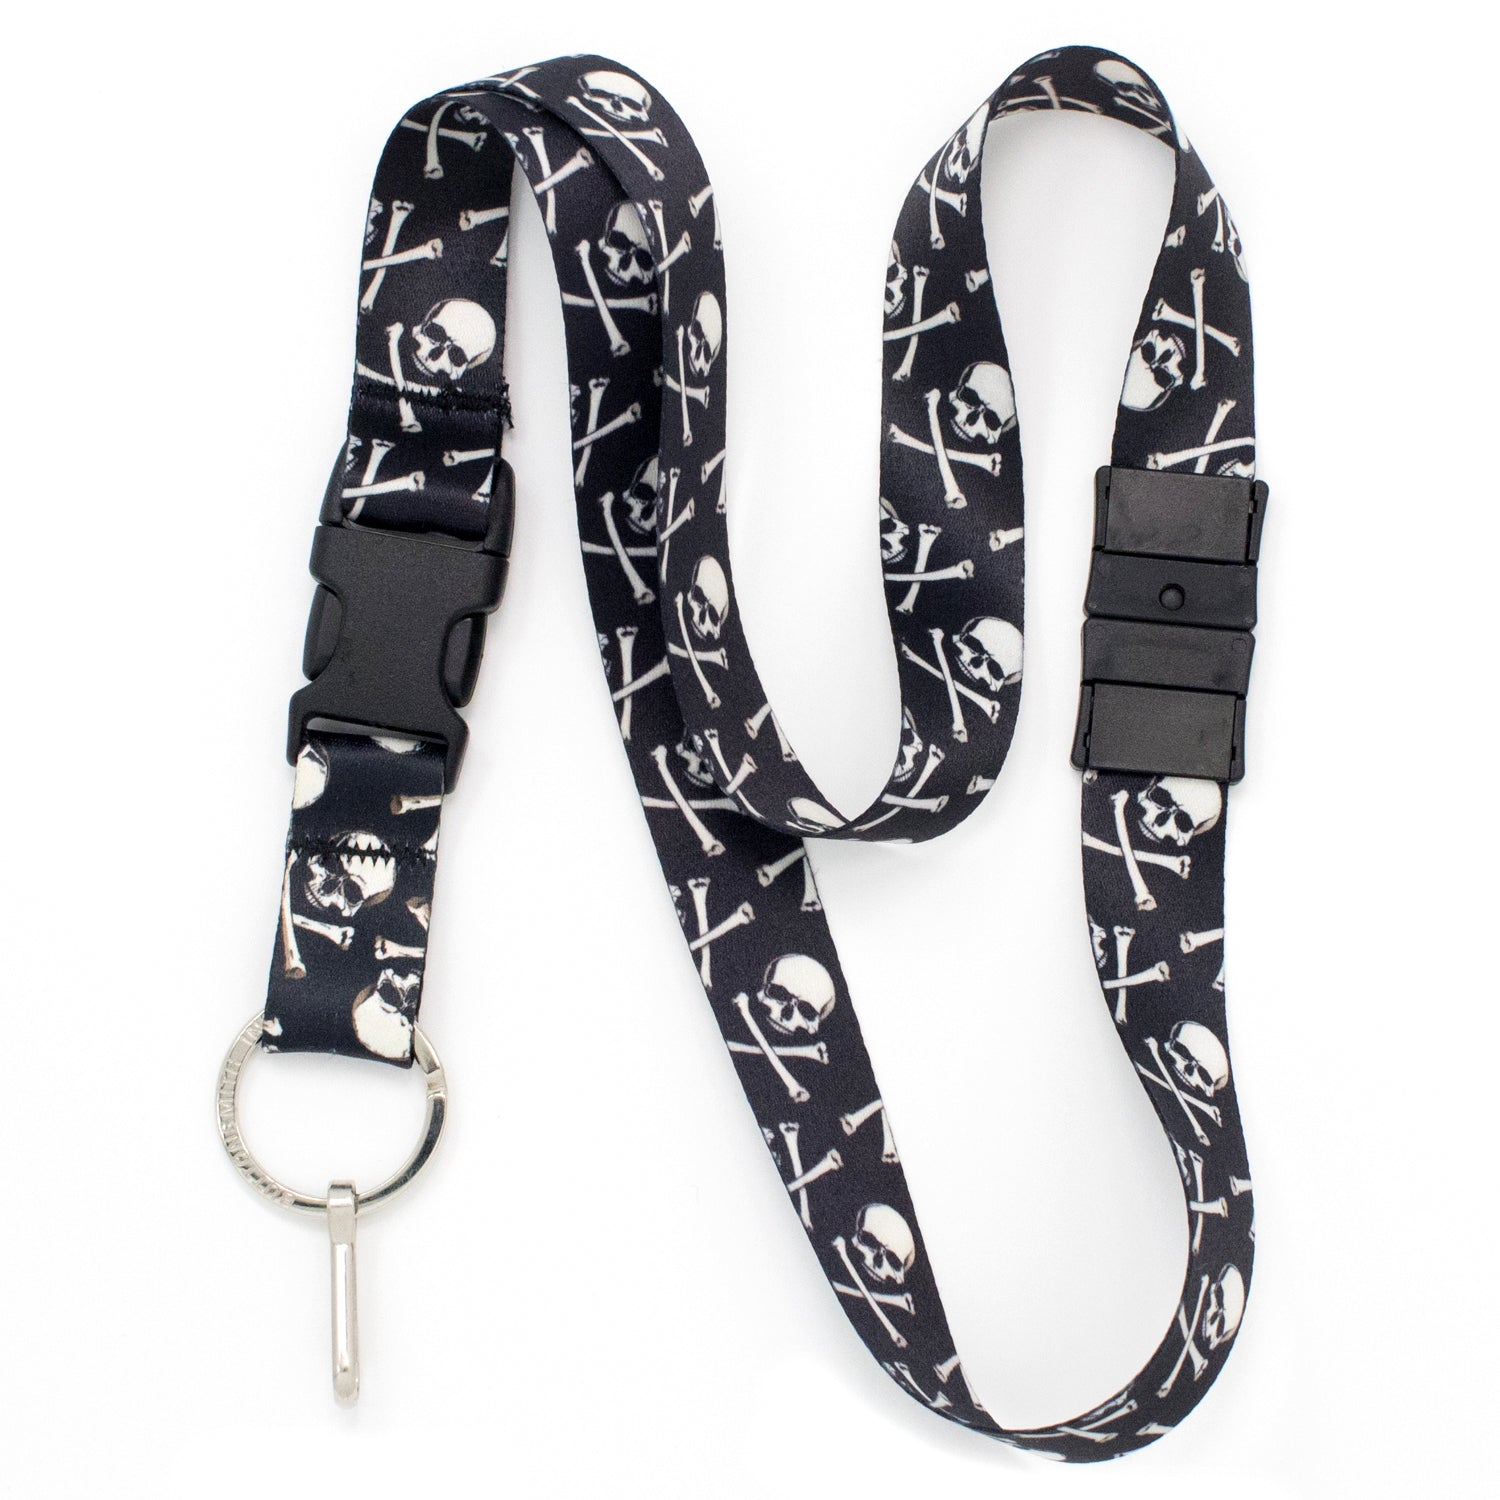 Buttonsmith Skulls Breakaway Lanyard - Made in USA